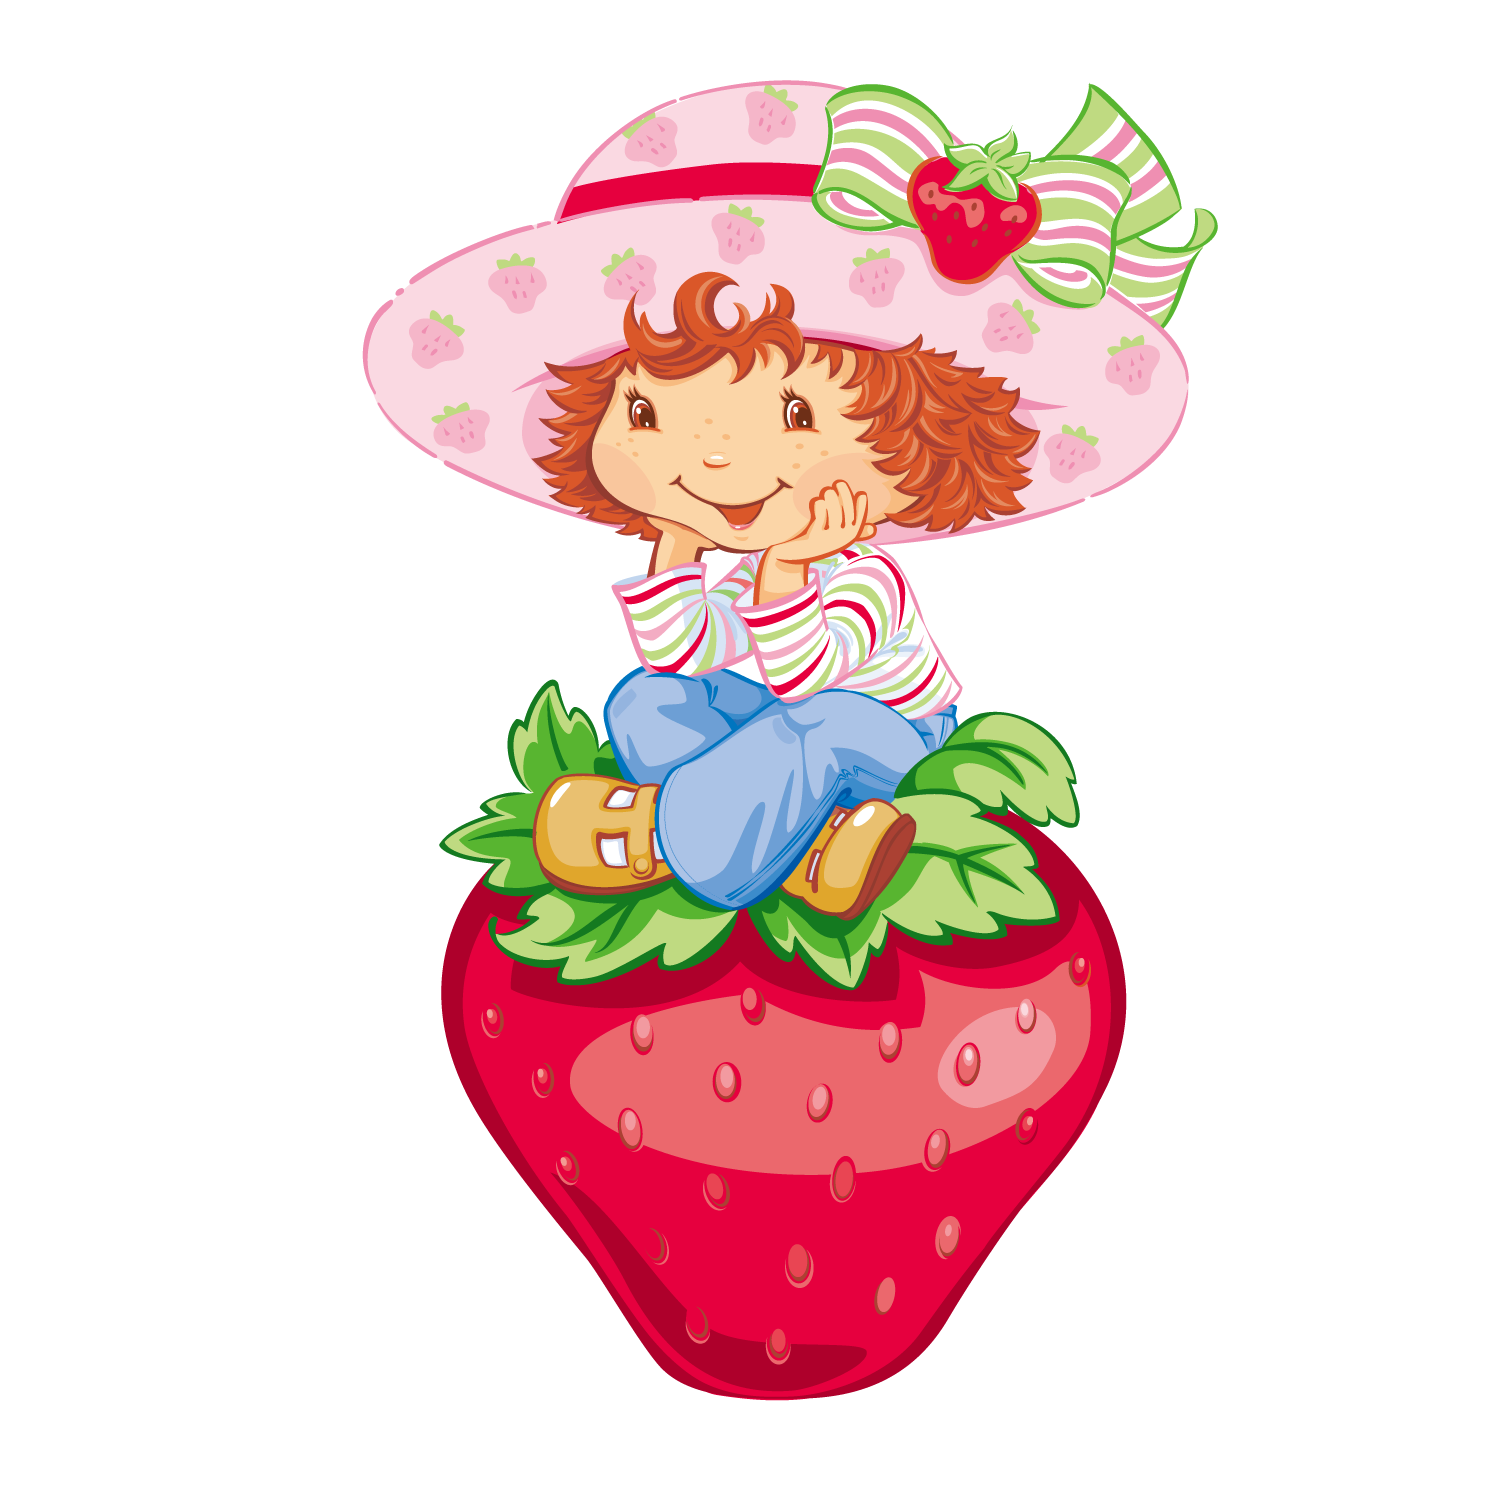 small resolution of transparent library shortcake tart cheesecake strawberries clipart strawberry girl